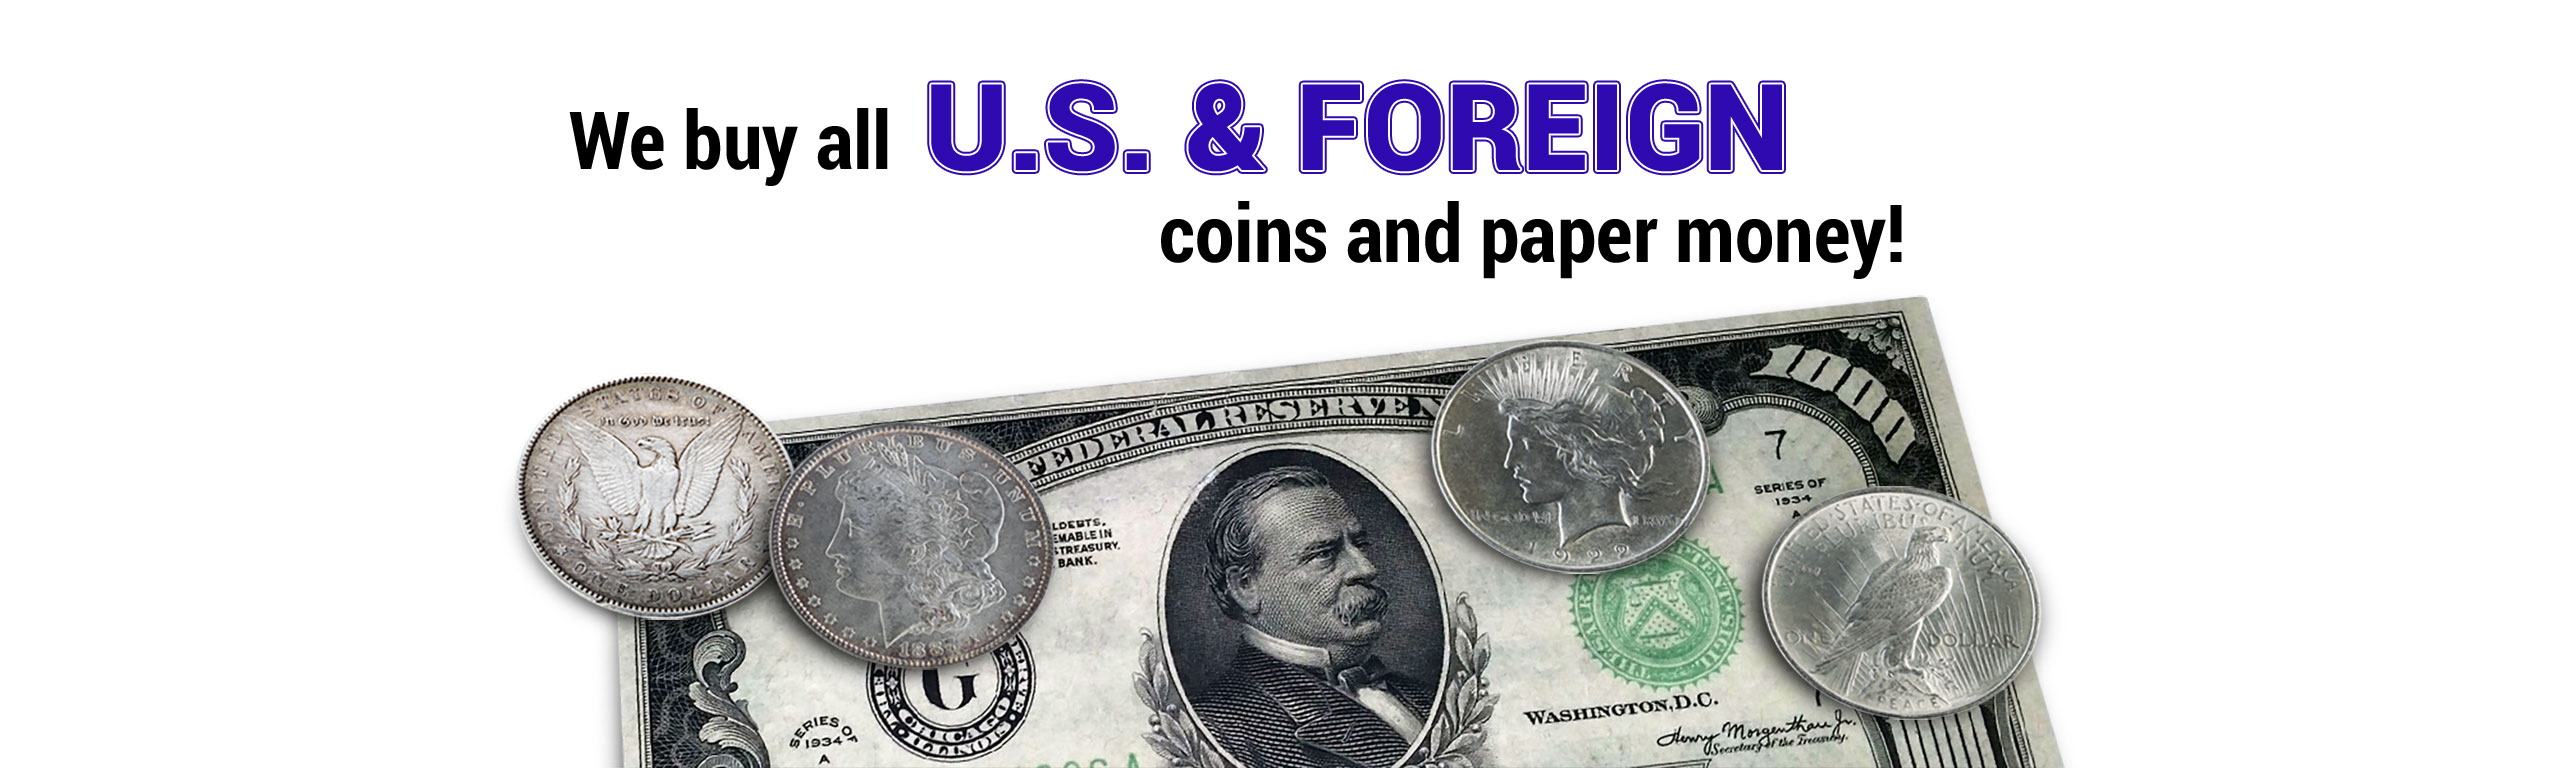 U.S. and Foreign Coins and Paper Money